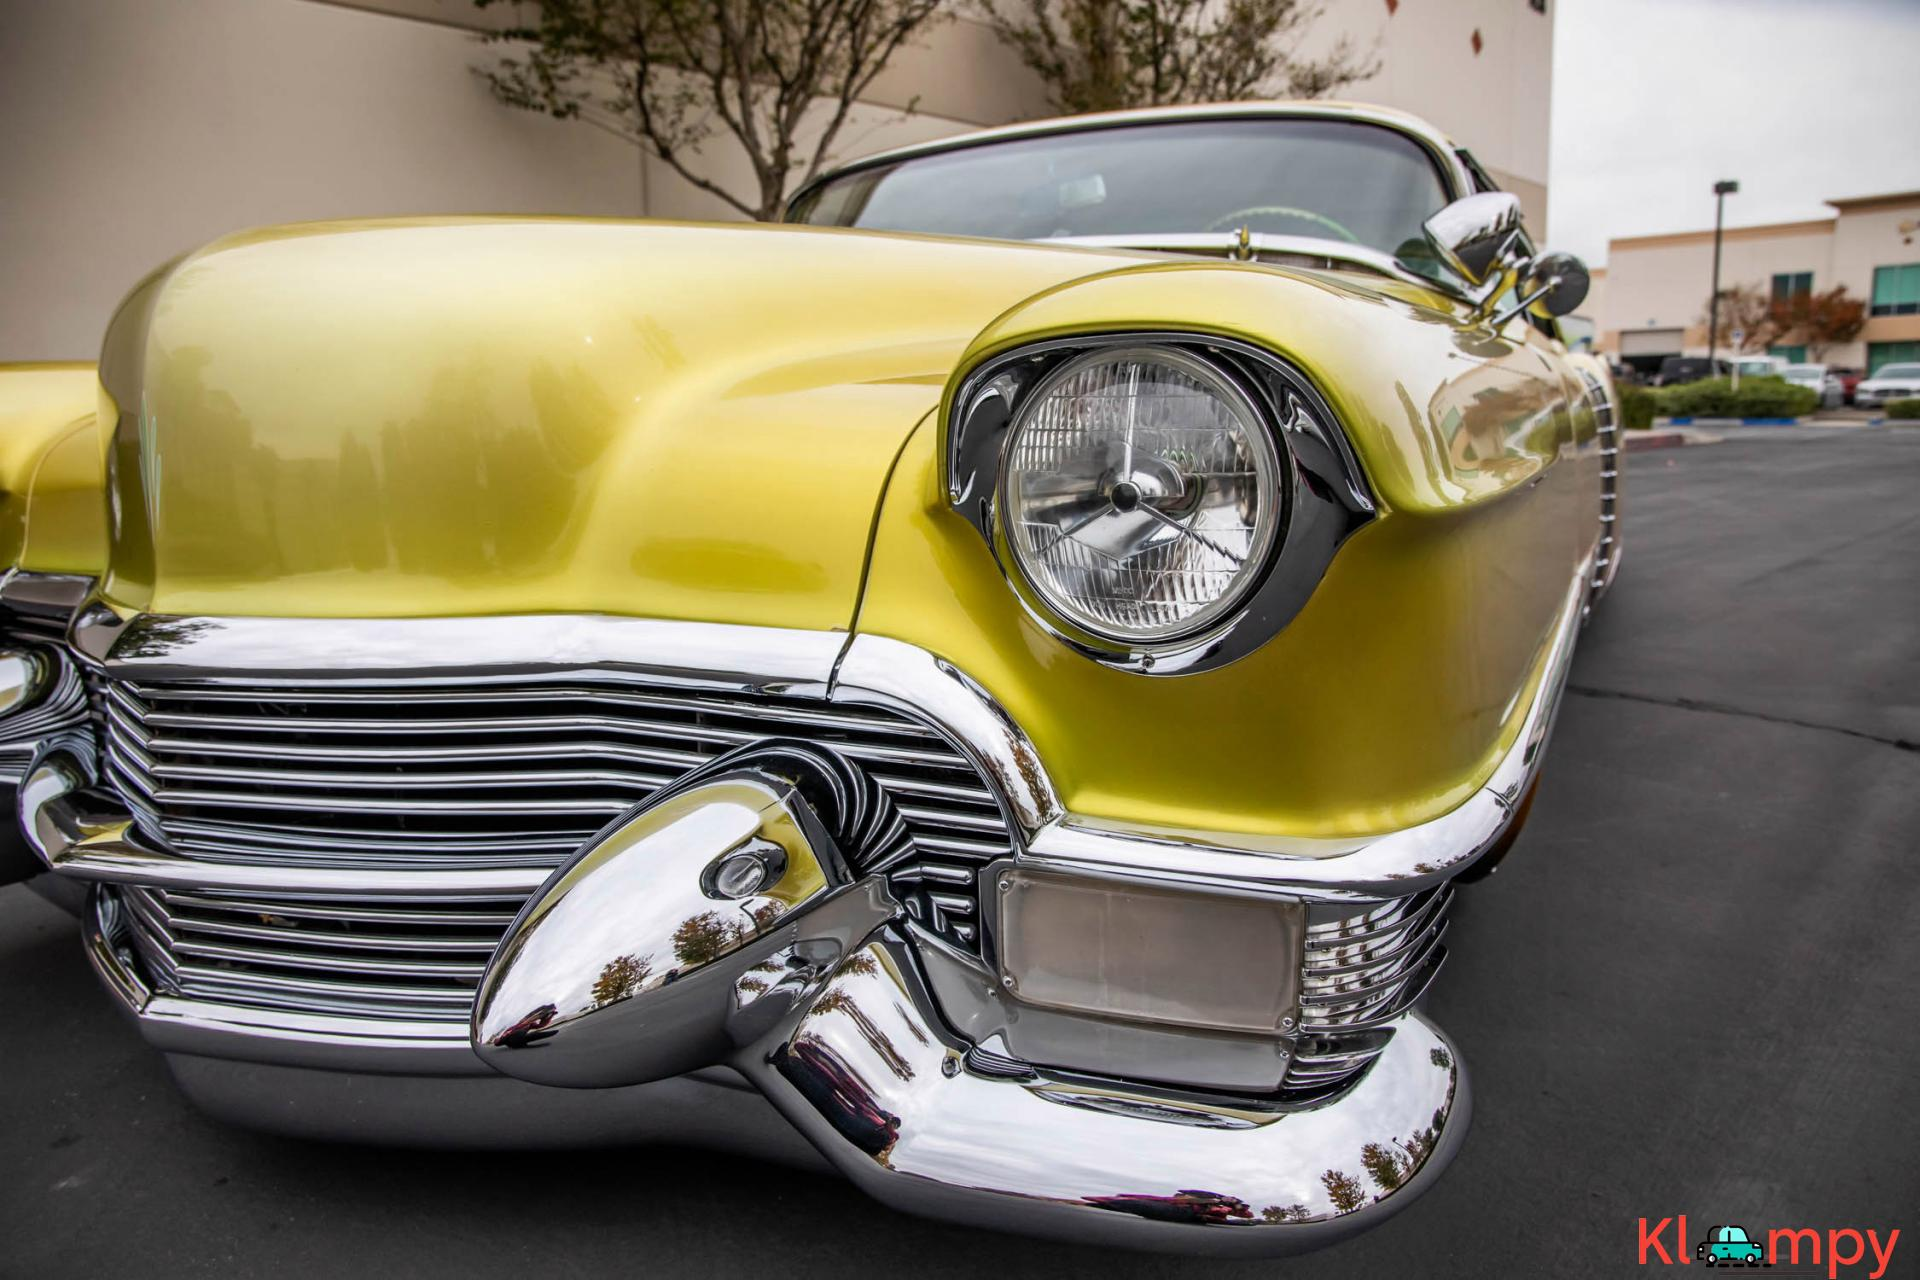 1954 Cadillac Coupe DeVille Lime Gold 331CI V8 - Kloompy